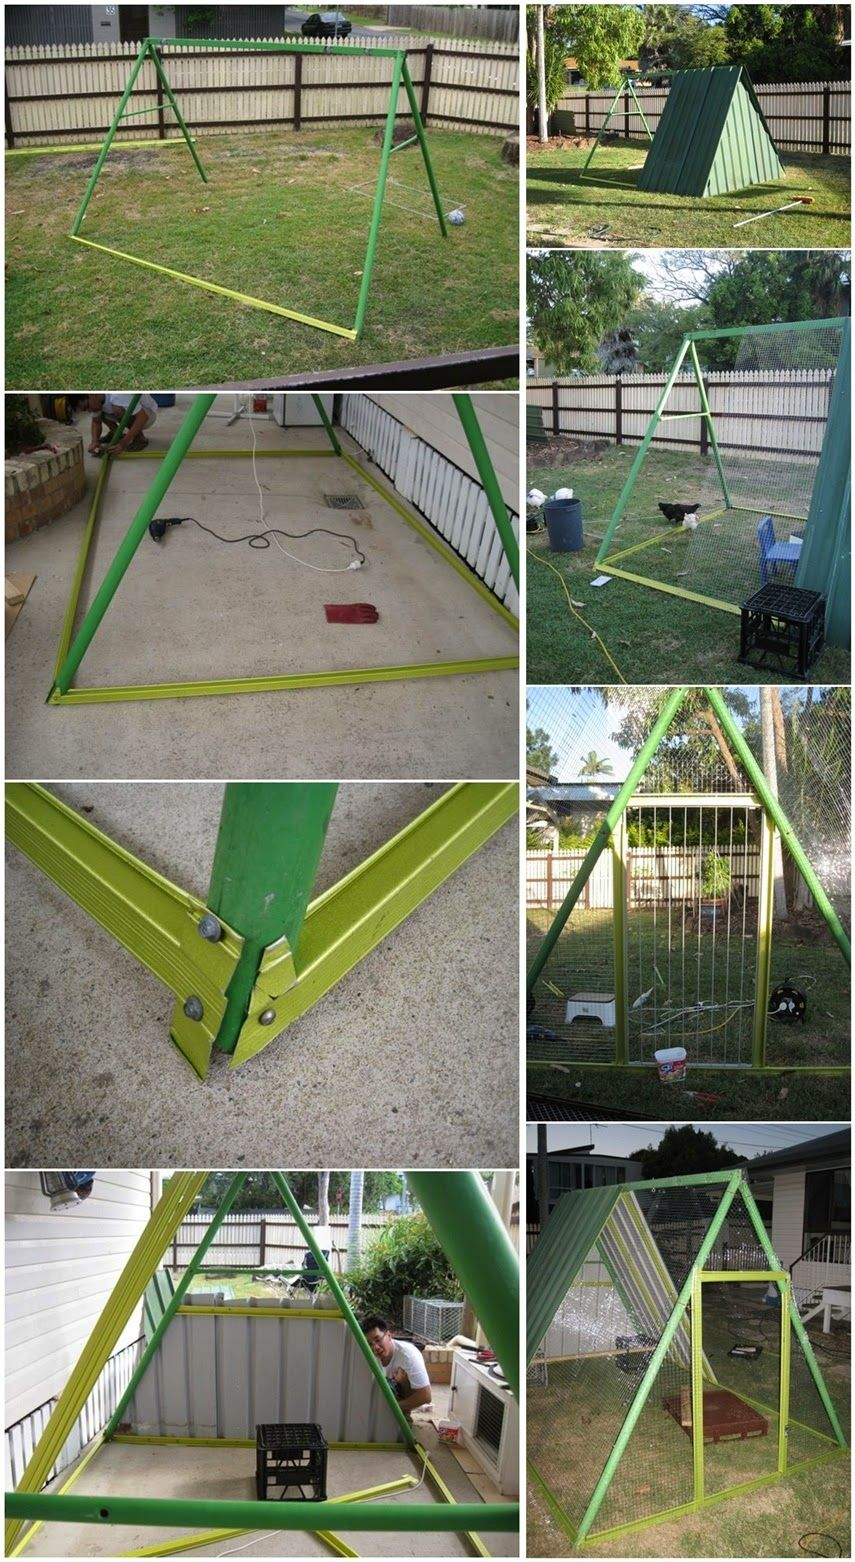 Chicken House From Swing Set On Pinterest Diy Projects